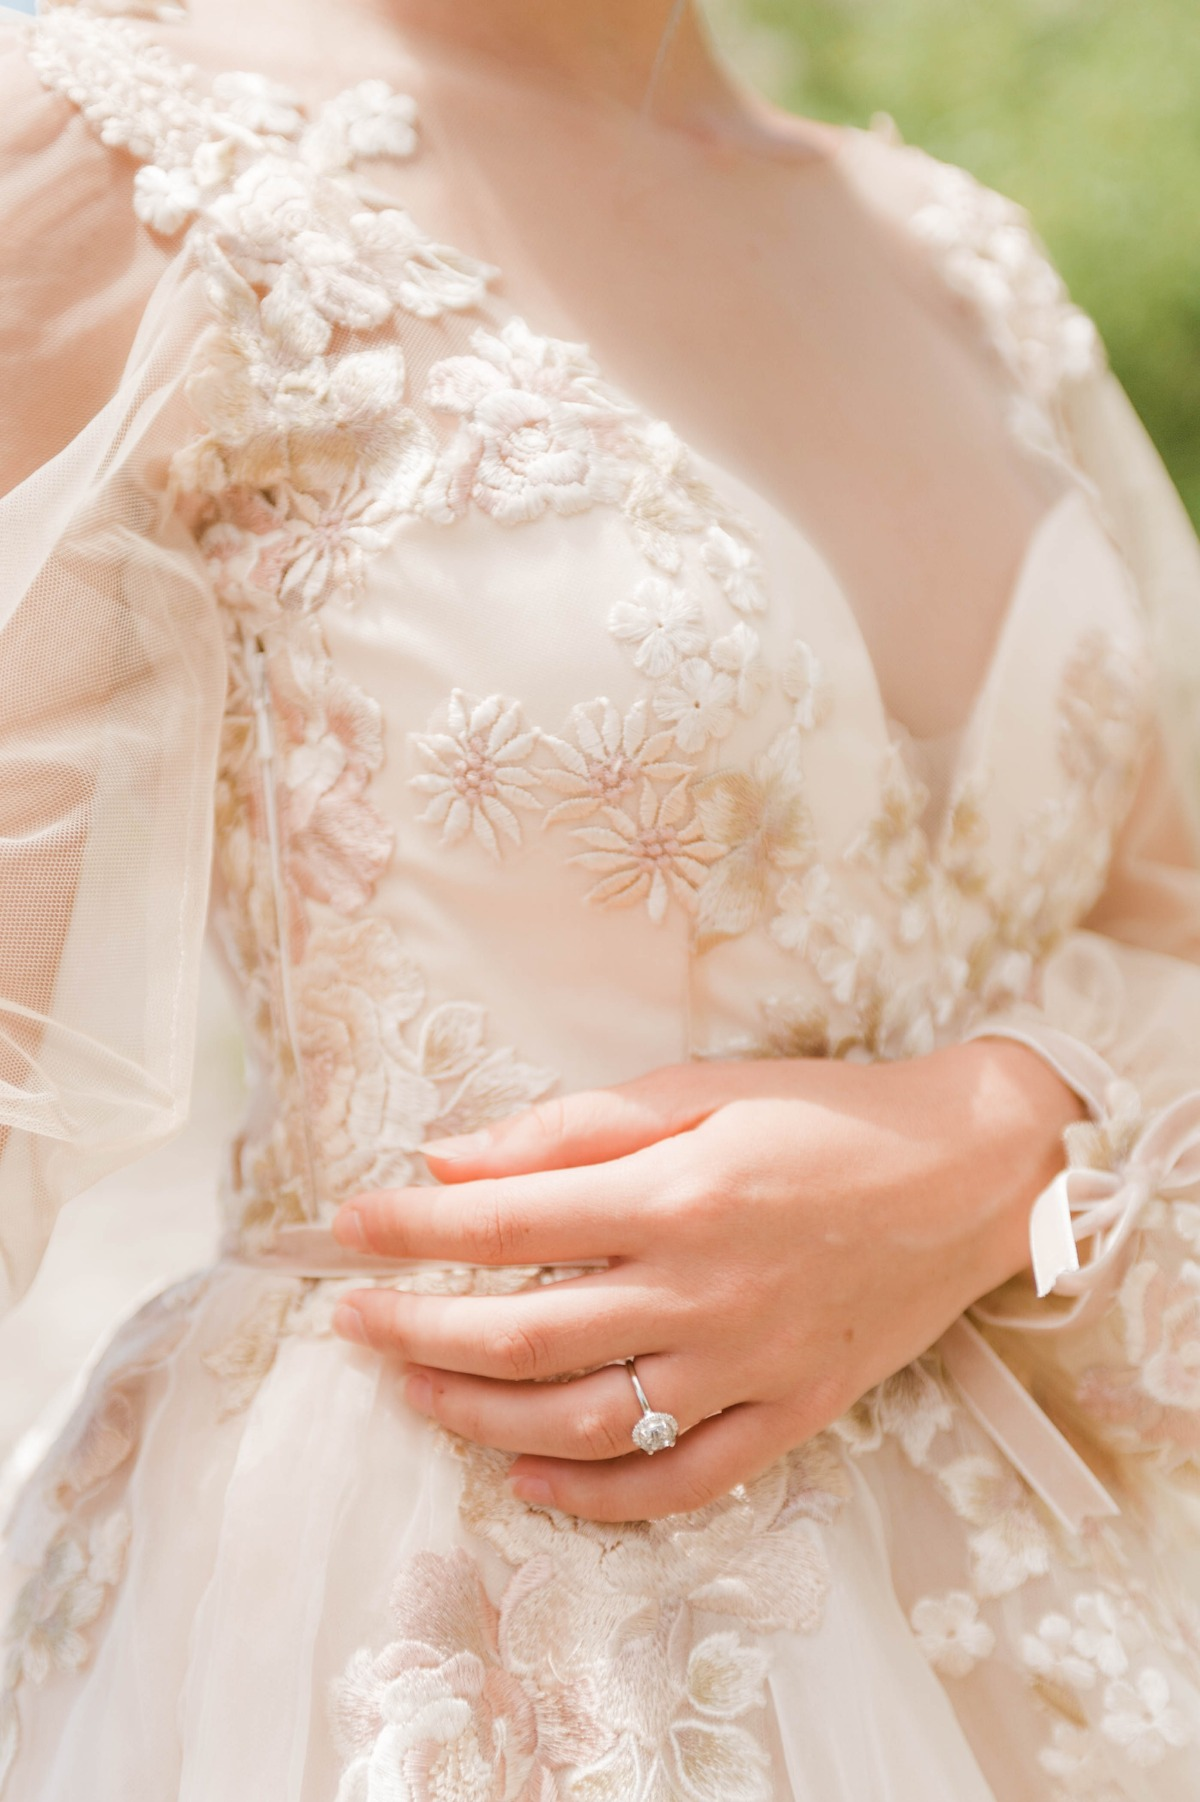 floral applique wedding dress details